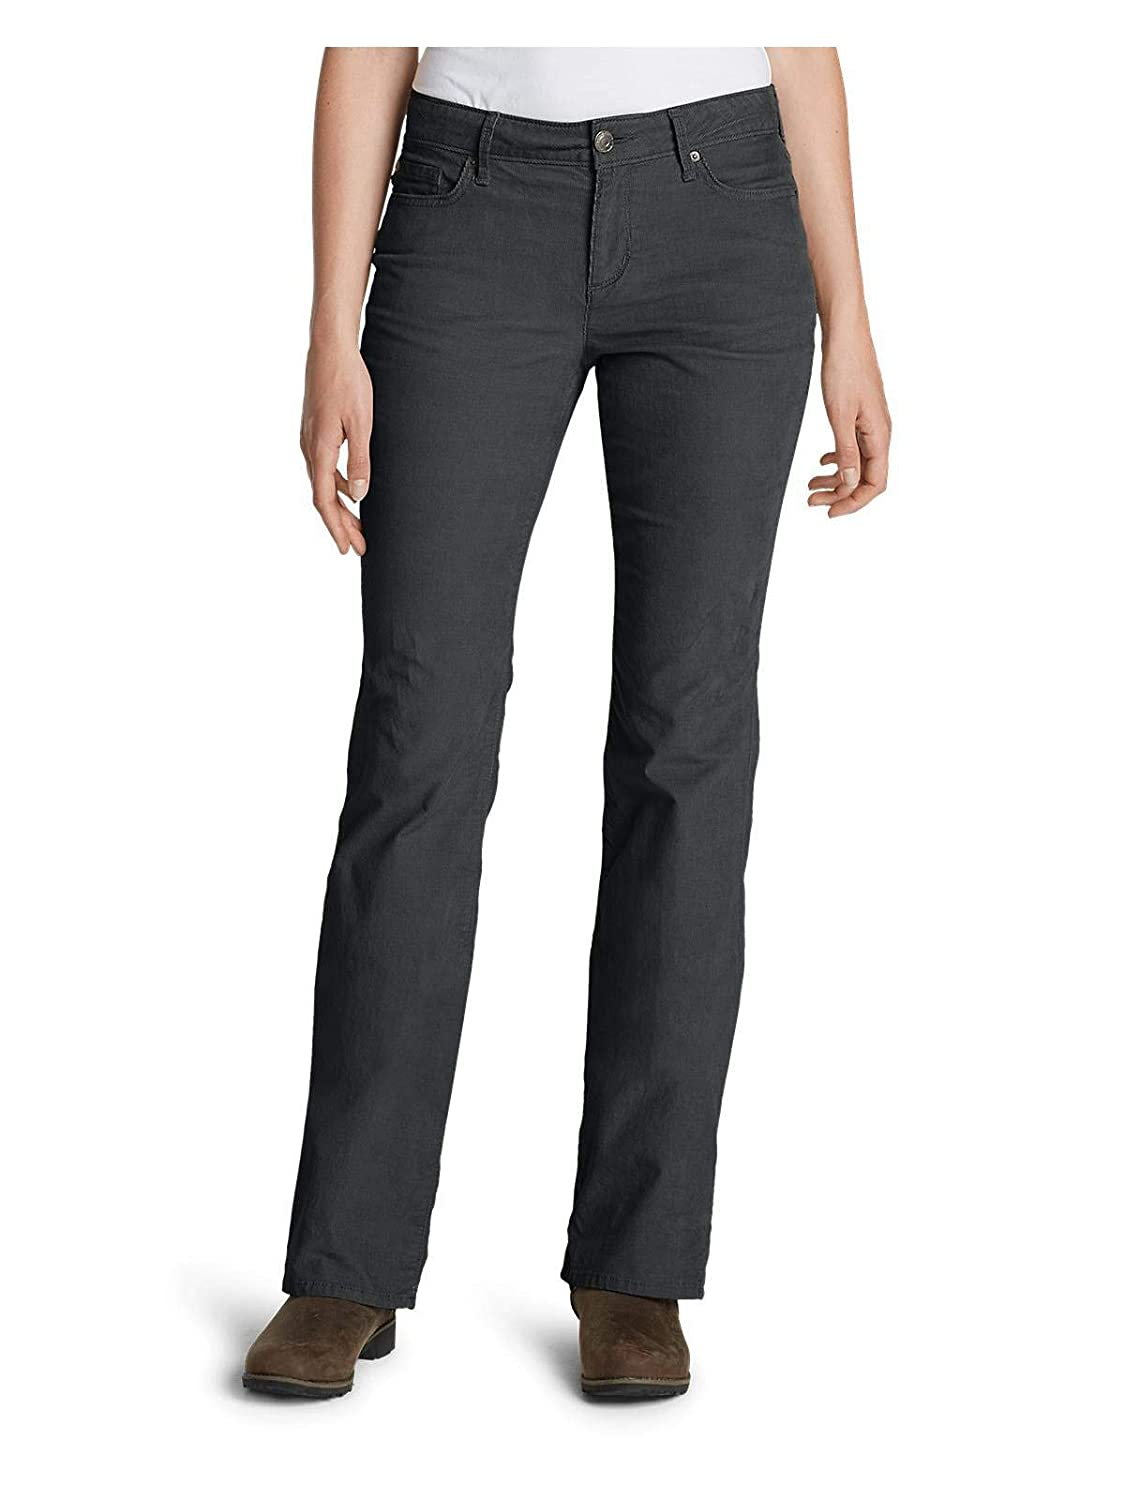 7b8e339c Eddie Bauer Women's Curvy Bootcut Cord Pants at Amazon Women's Clothing  store: